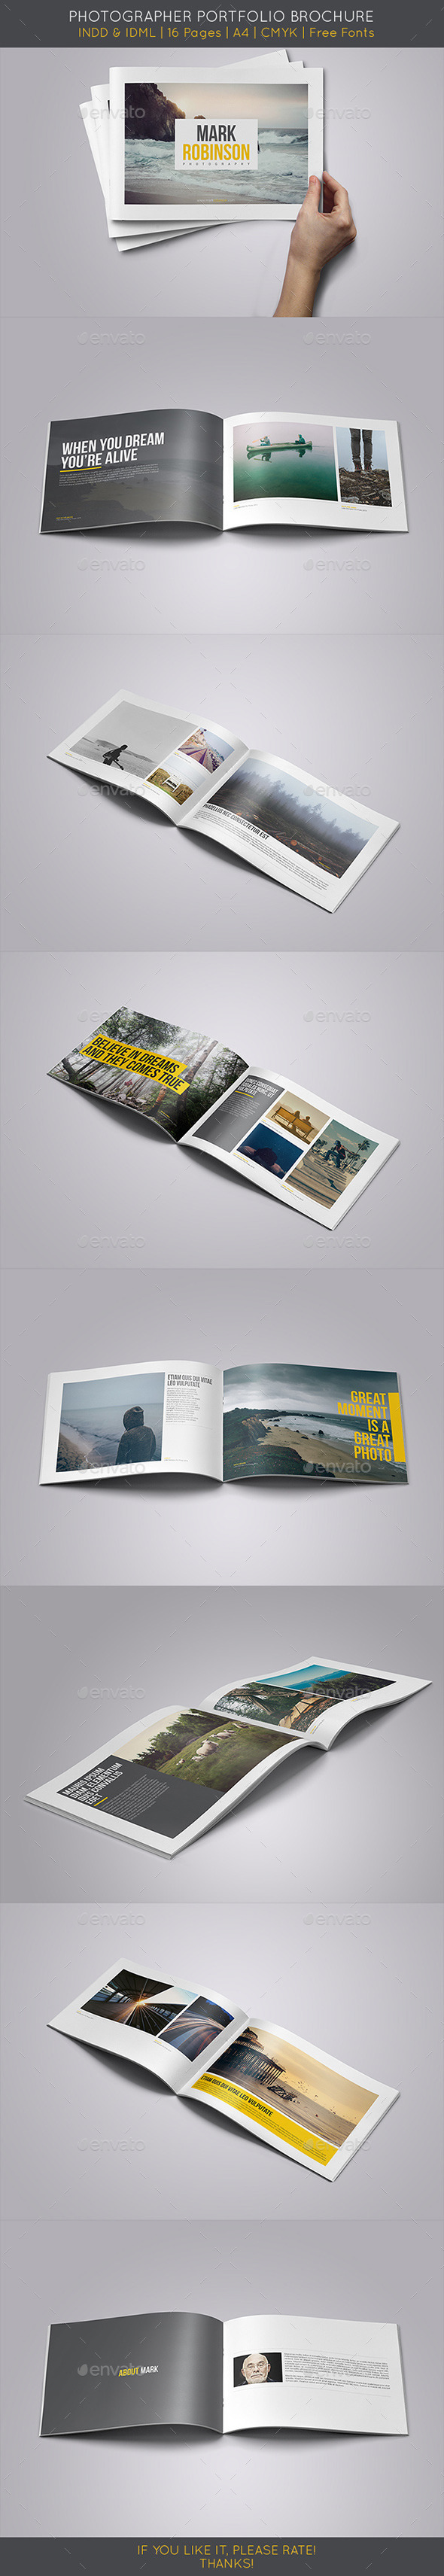 GraphicRiver Portfolio Brochure Vol.1 9871120